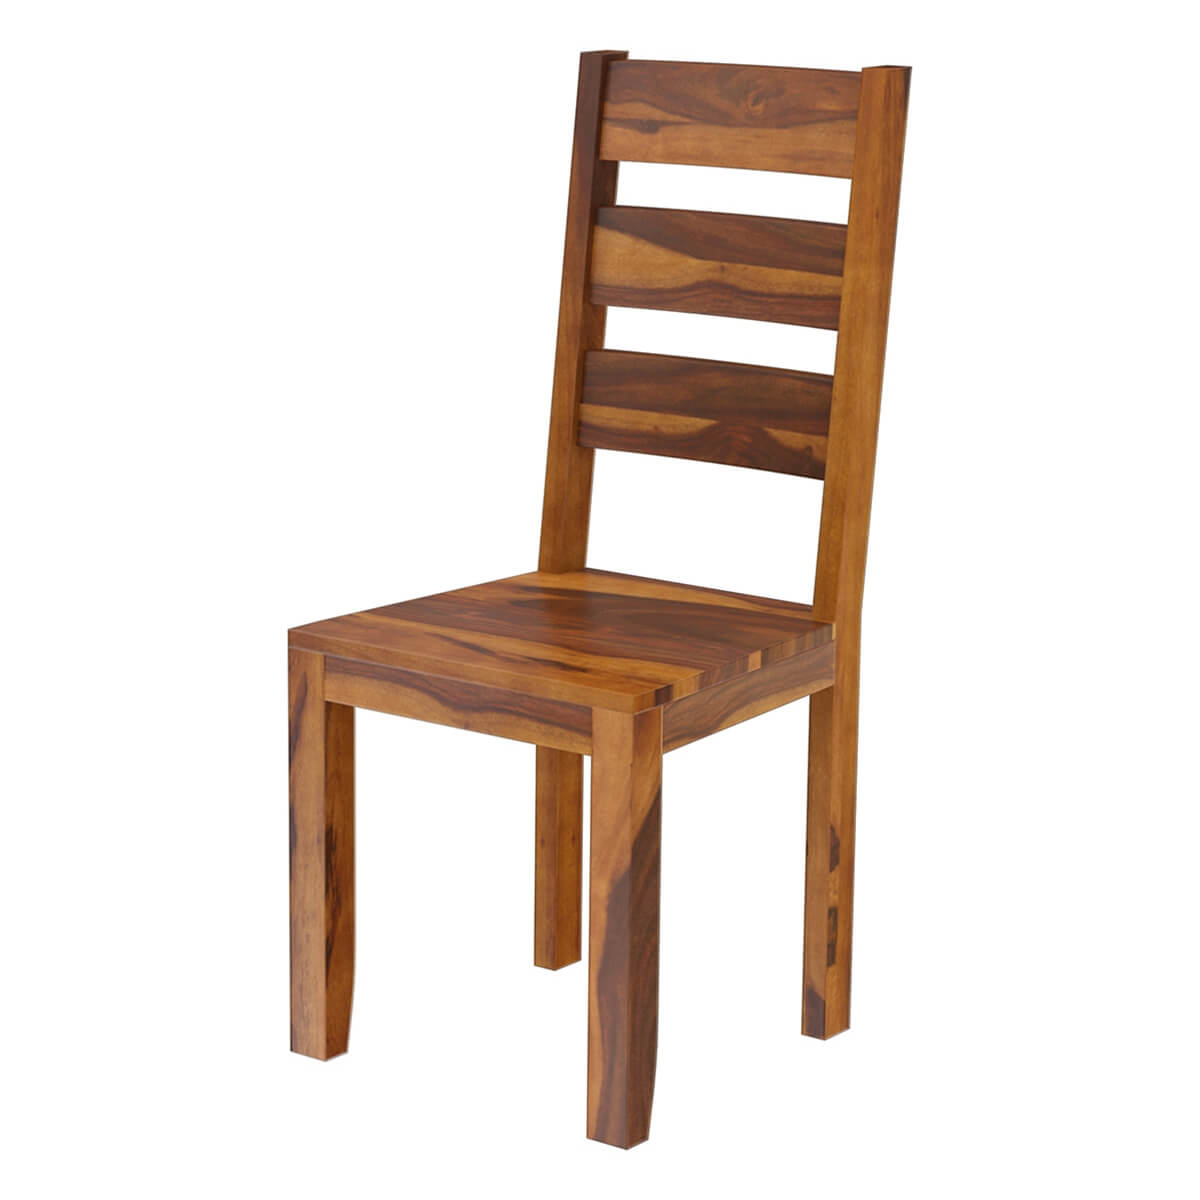 Rustic Modern Wood Dining Chair: Cariboo Contemporary Rustic Solid Wood Ladder Back Dining